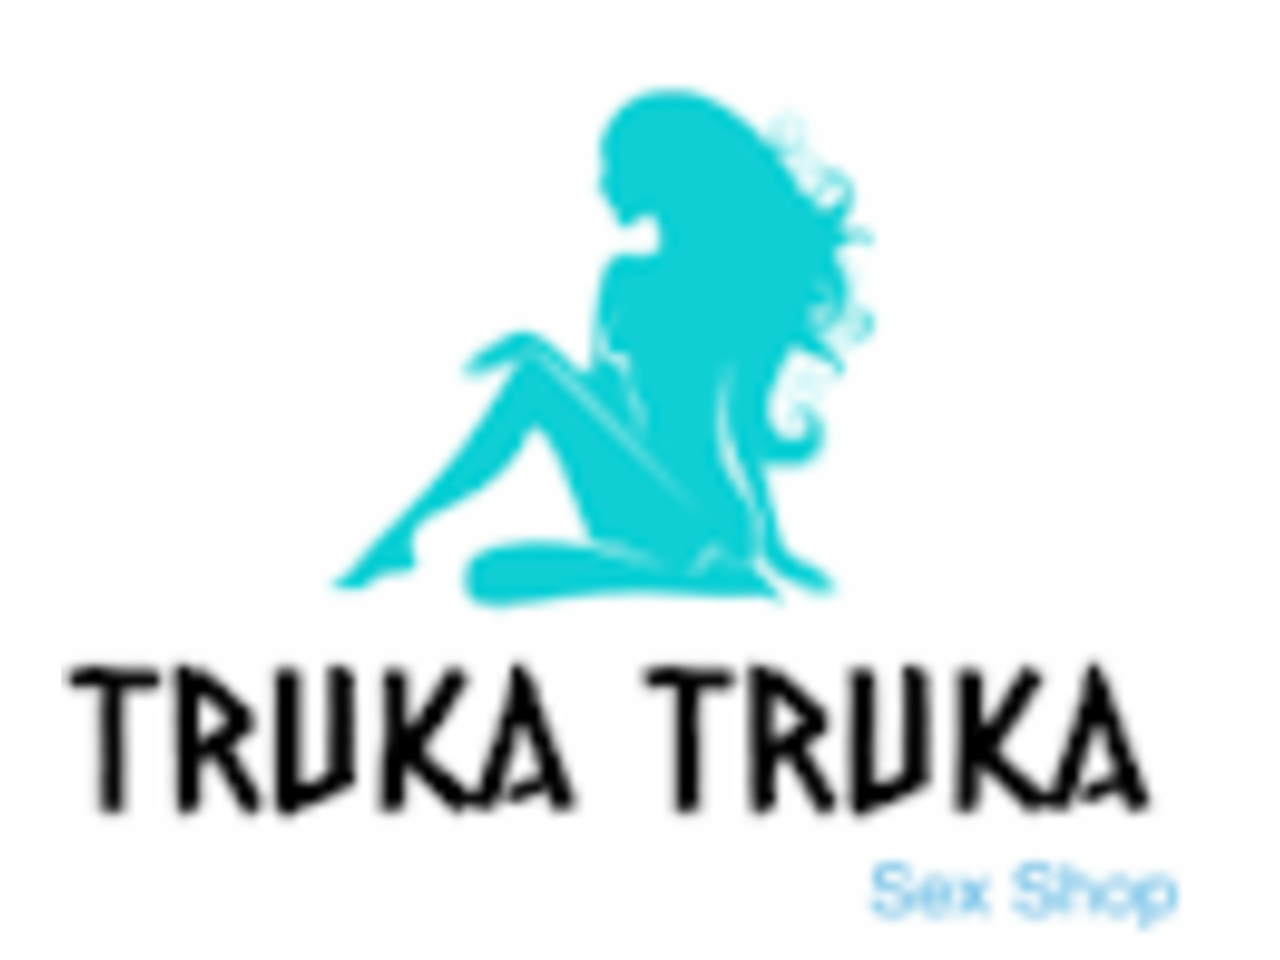 Sex Shop Truka Truka, a sex shop sem limites - 1/1